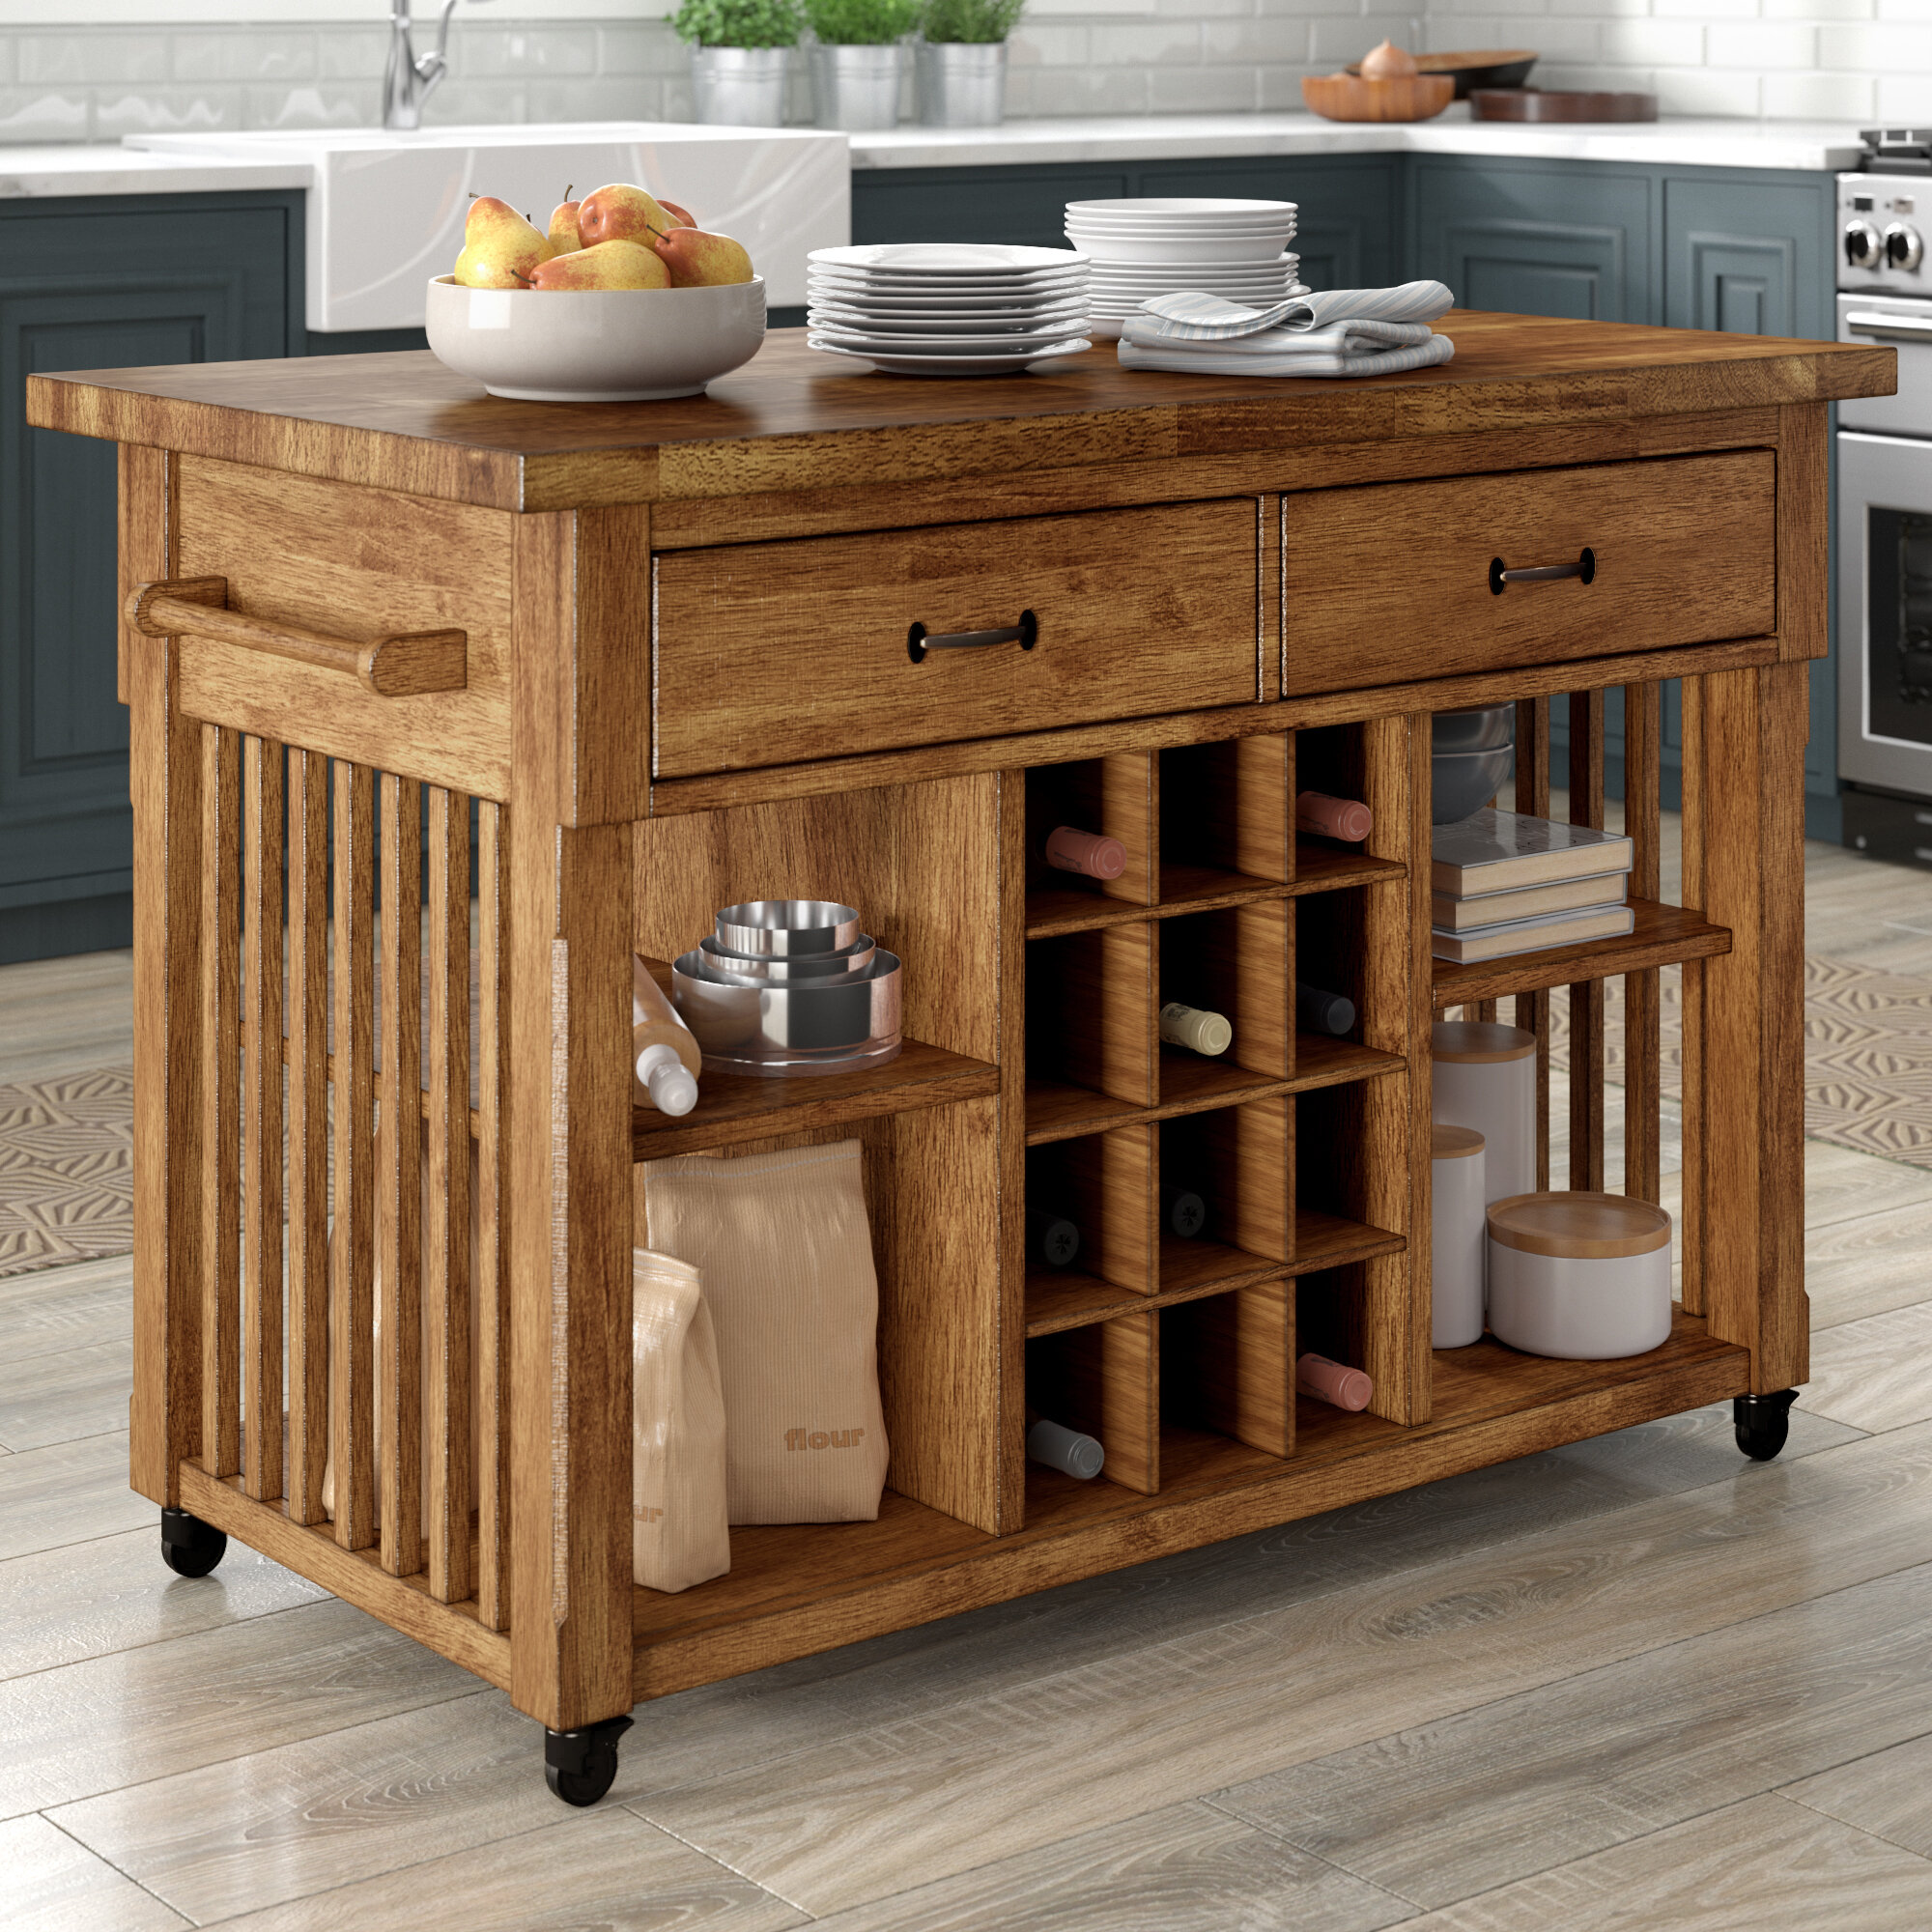 Fortville Kitchen Cart with Wood Top